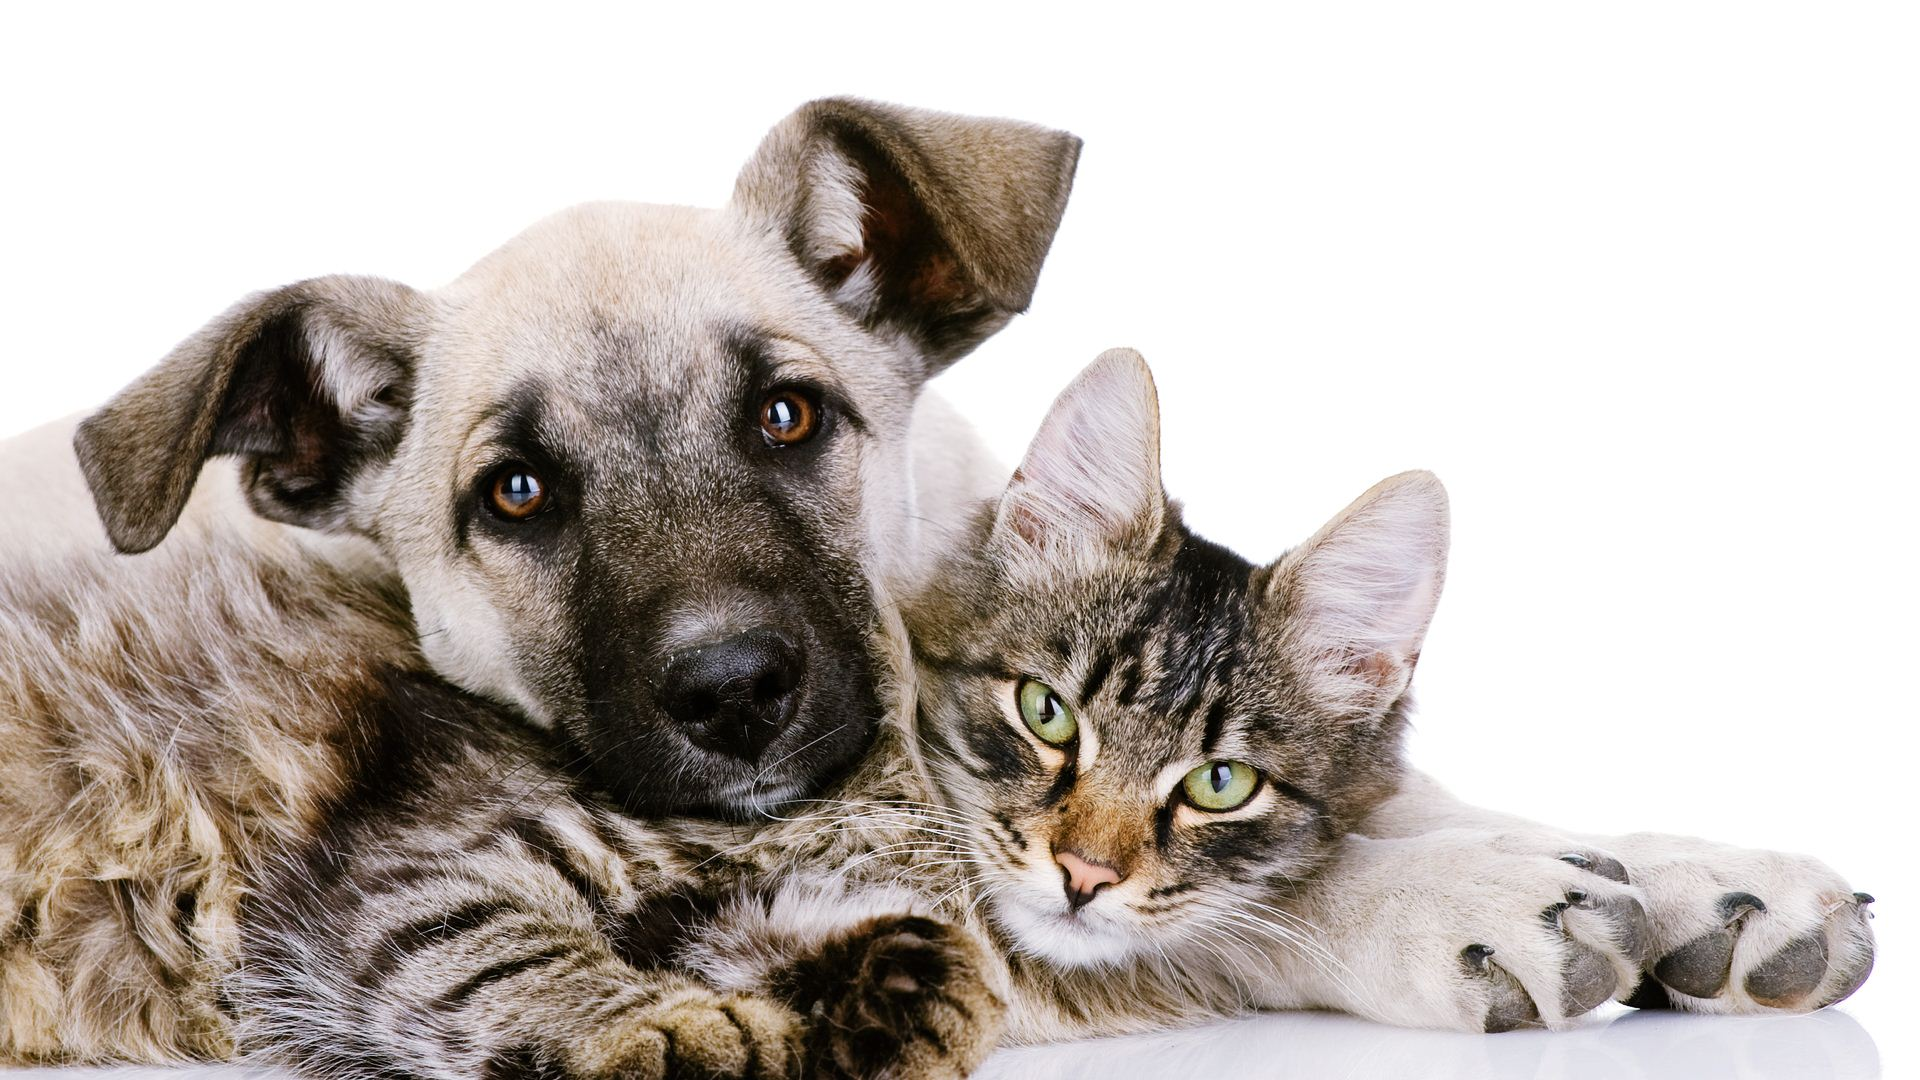 Cat And Dog Wallpapers High Quality Download 1920x1080